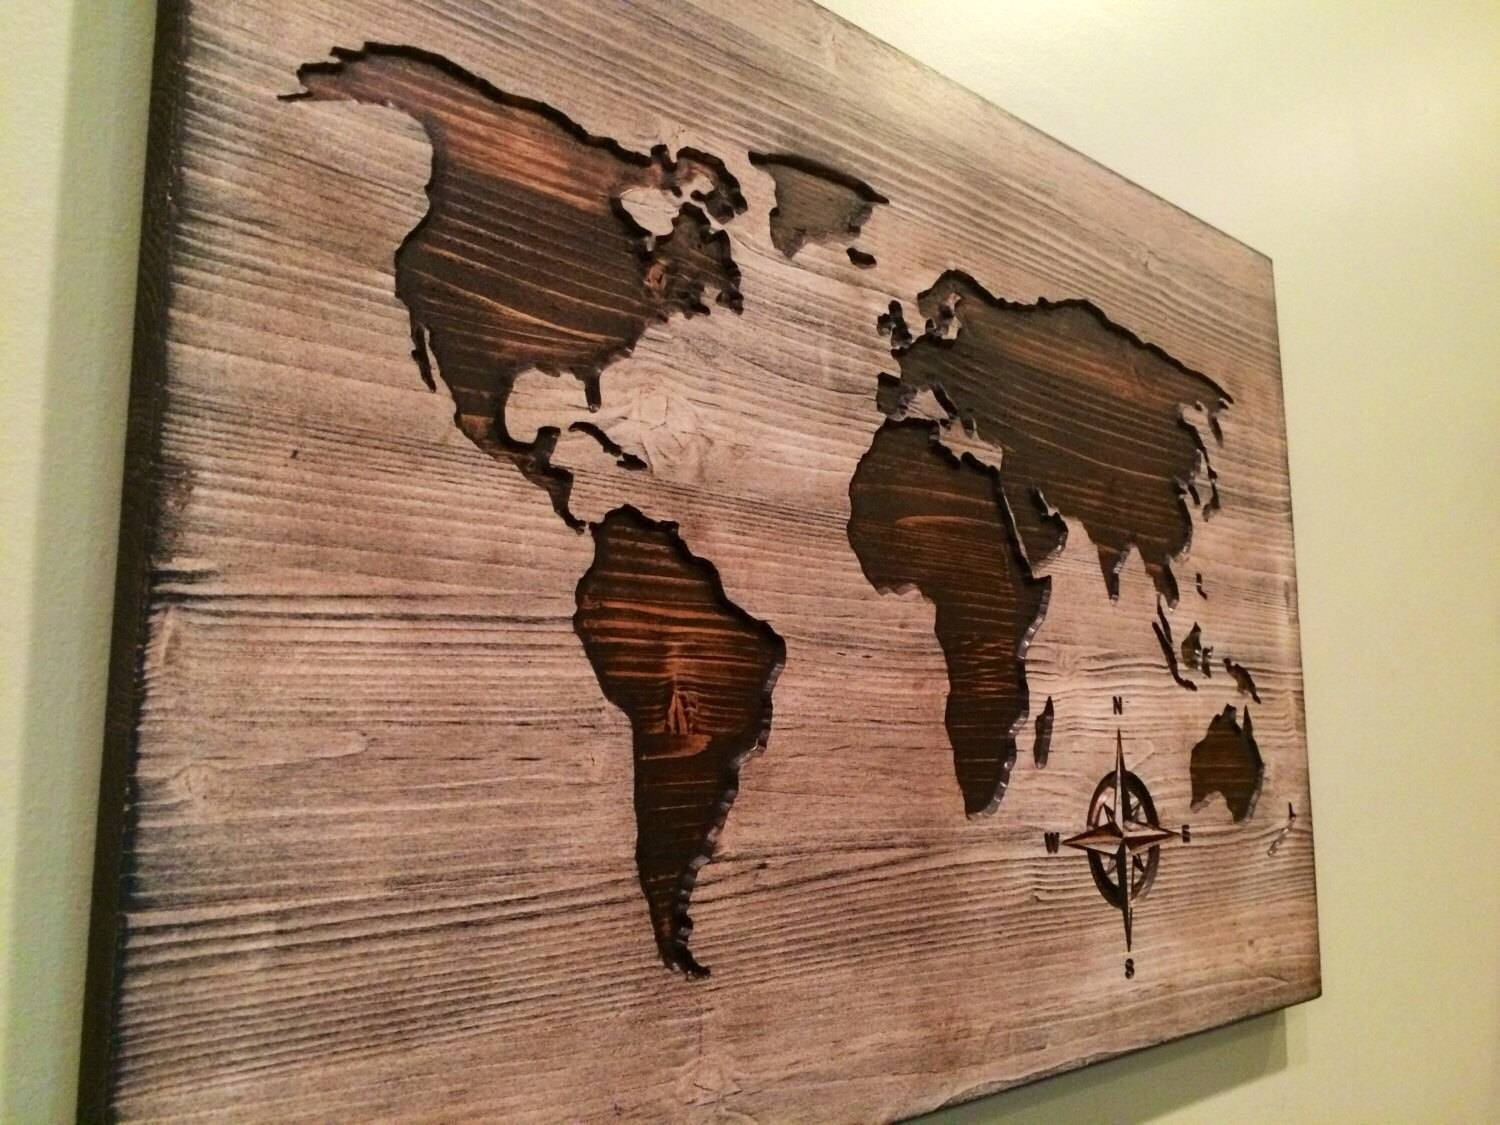 Carved Wooden World Map Wood Wall Art World Map Home Decor Within Most Current Wooden World Map Wall Art (View 2 of 20)